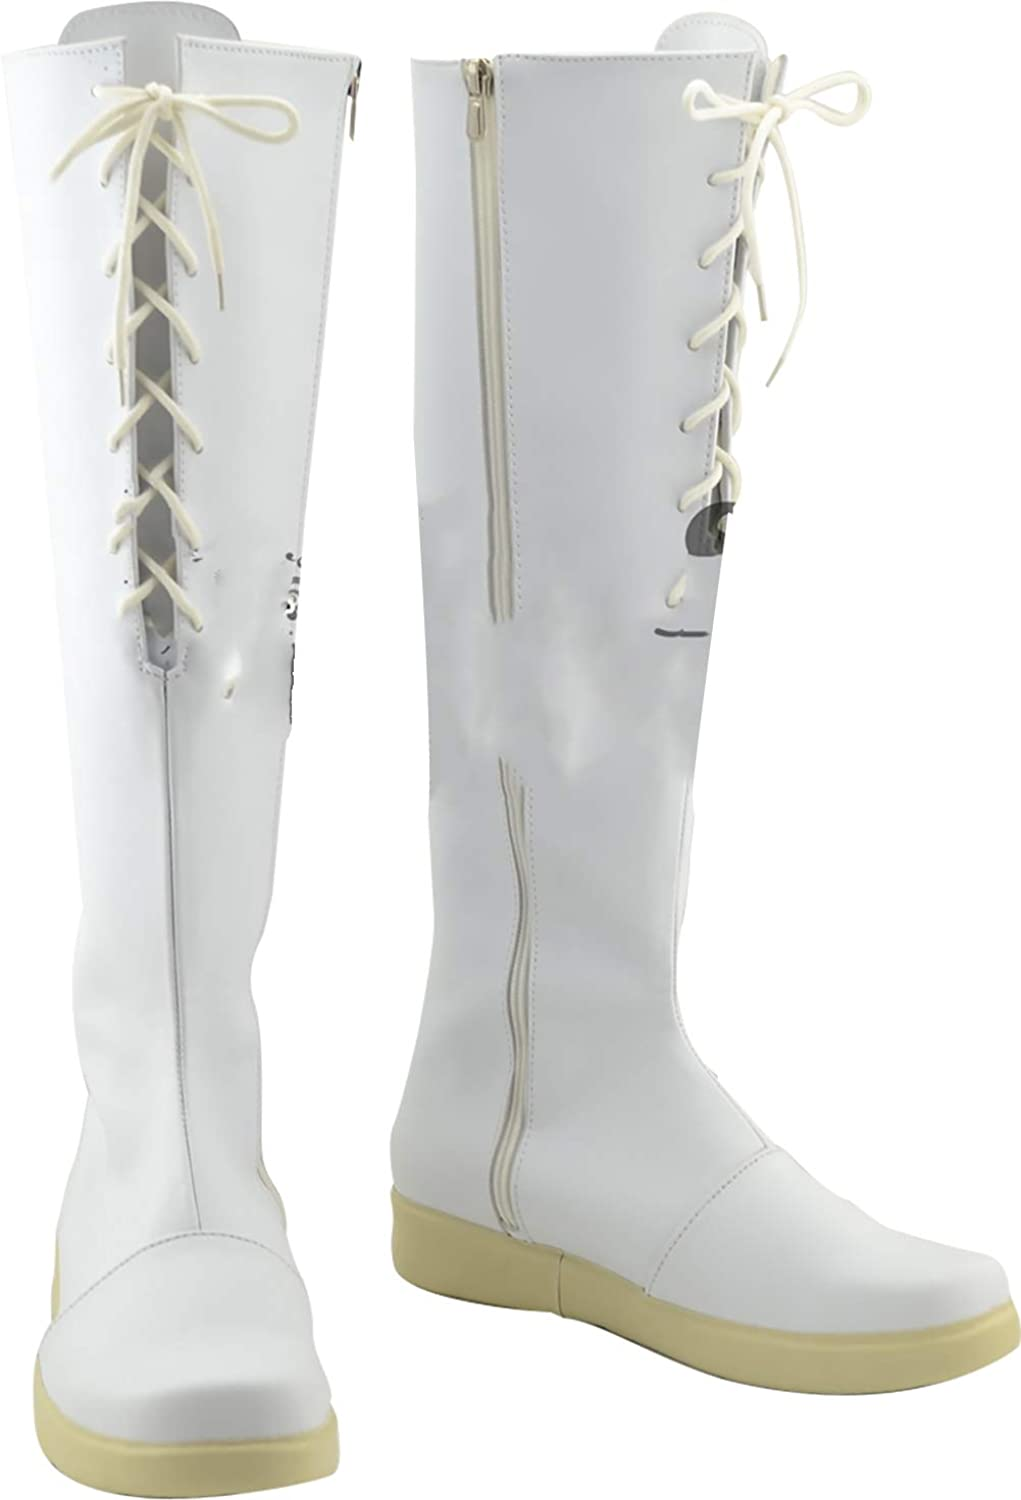 GSFDHDJS Cosplay Boots shoes for Axis powers Hetalia Republic of Iceland